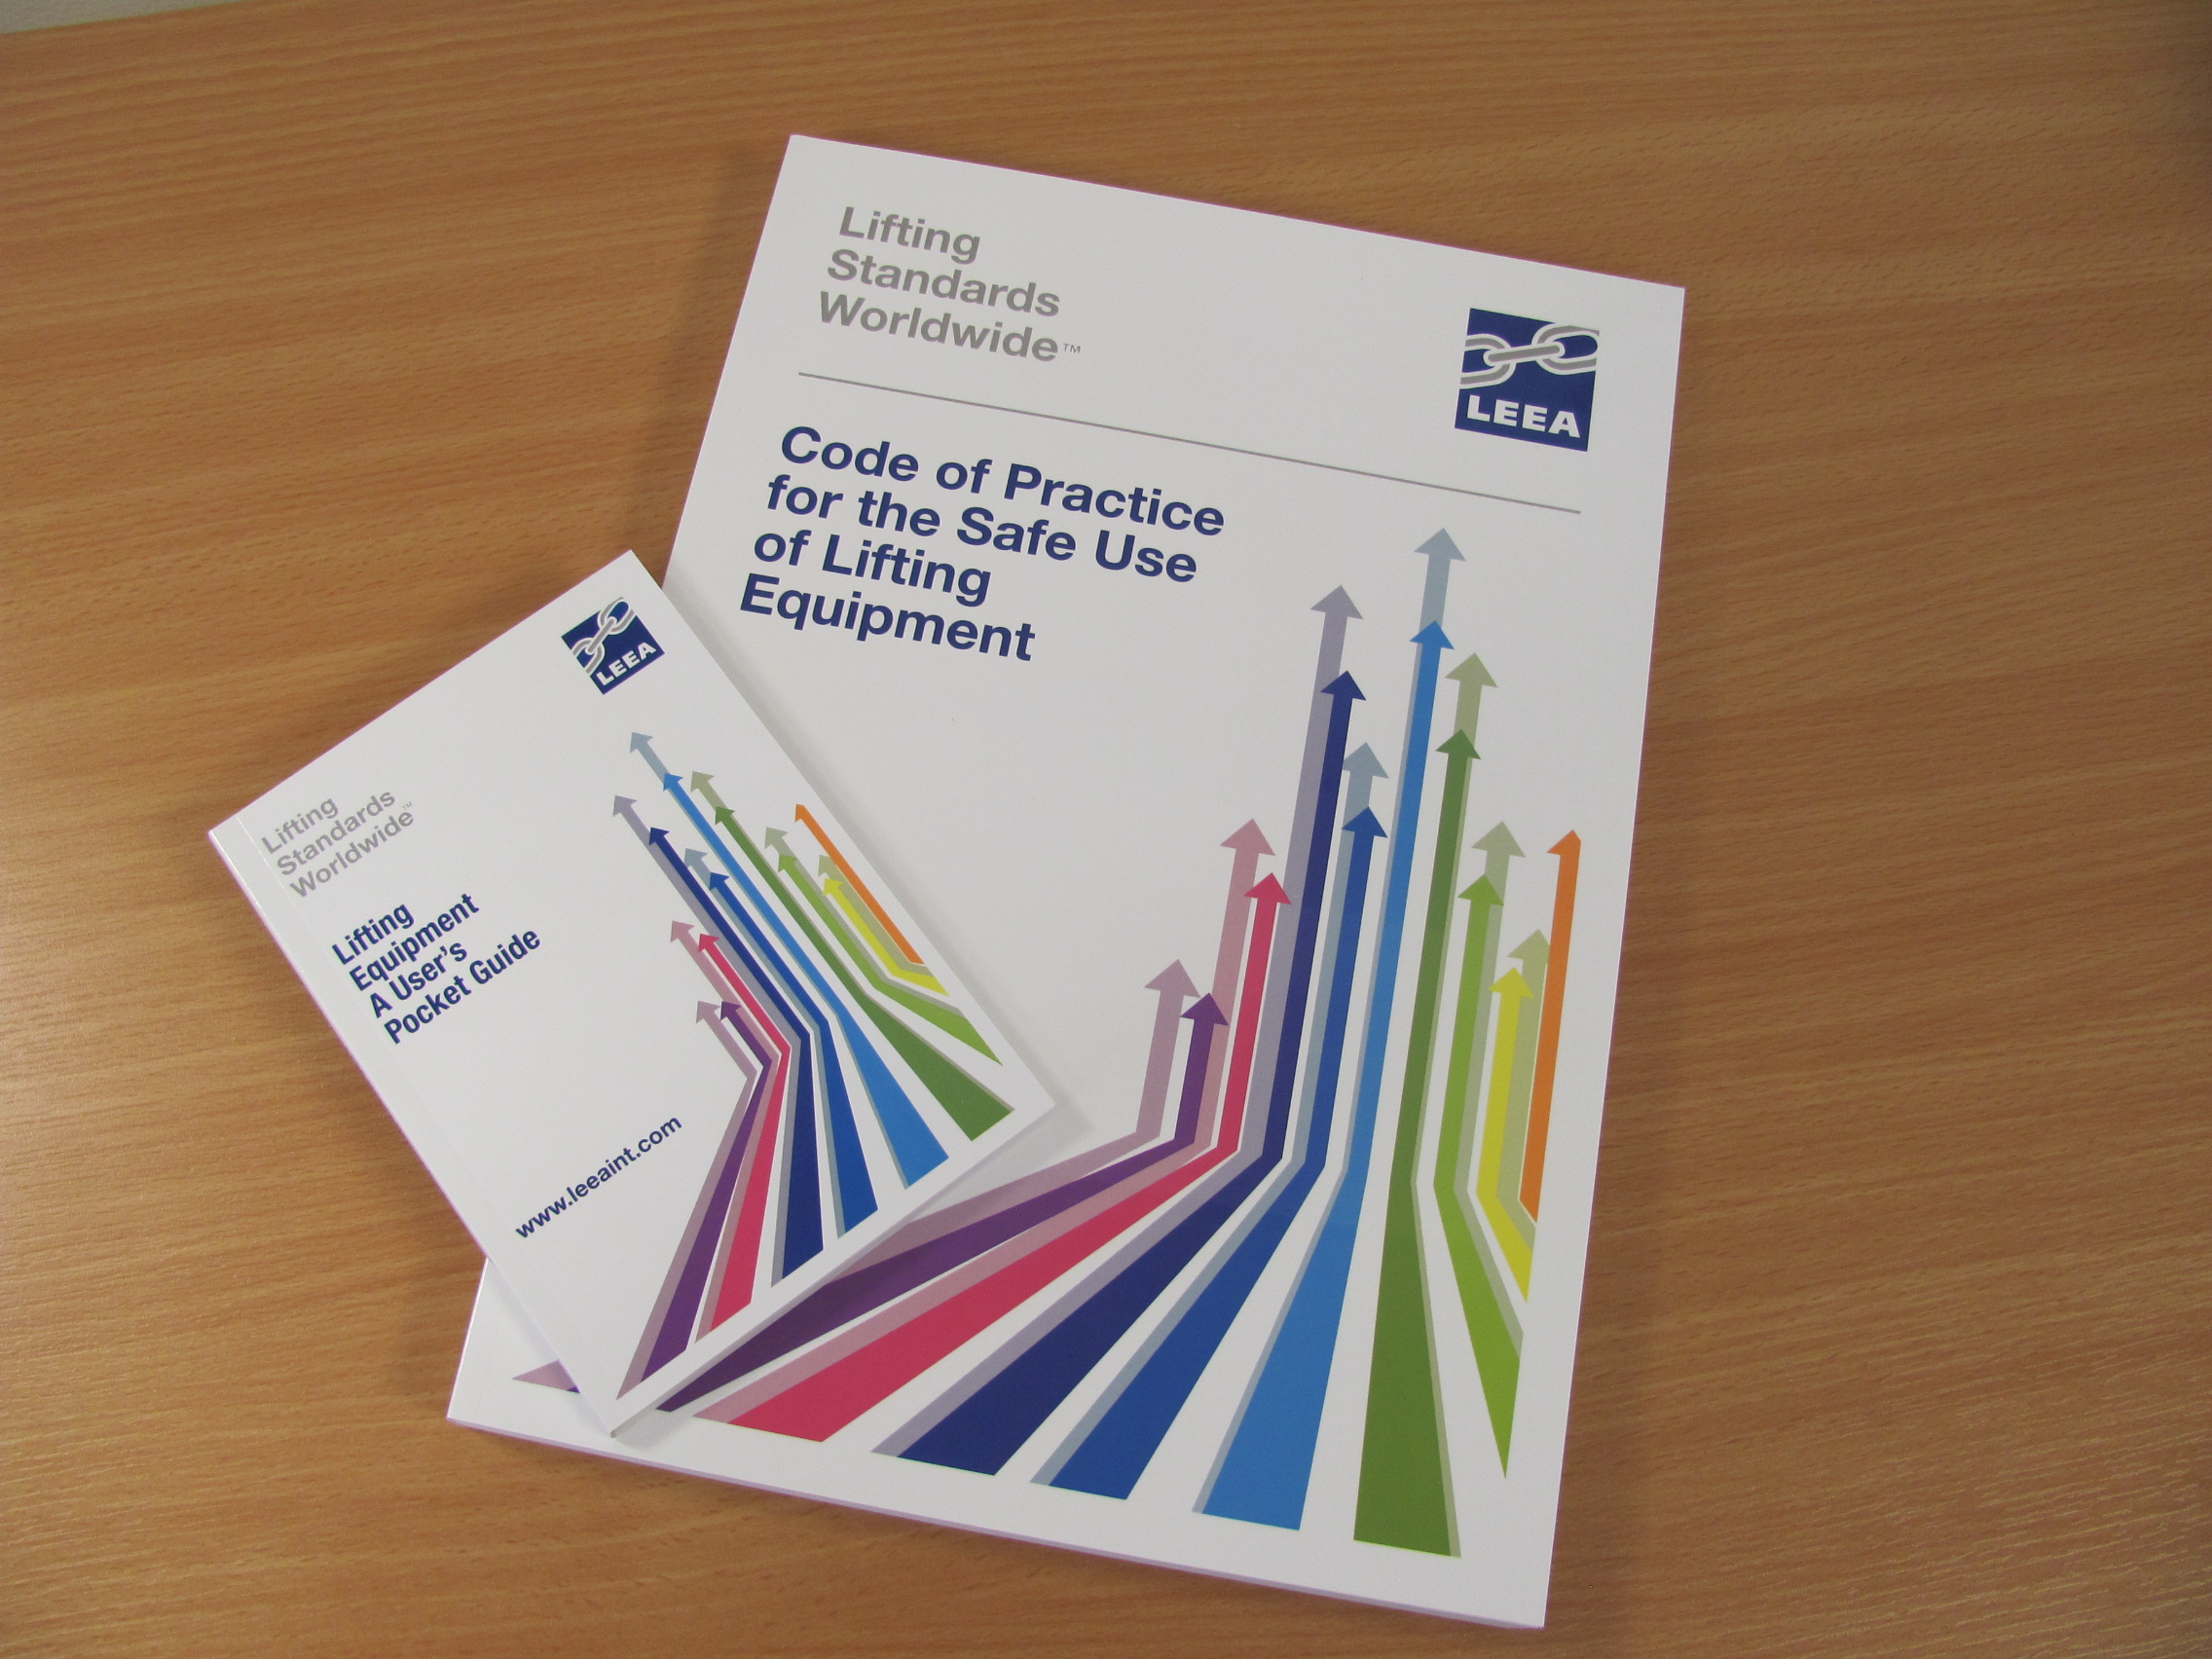 LEEA has launched new editions of its Code of Practice and User's Pocket Guide